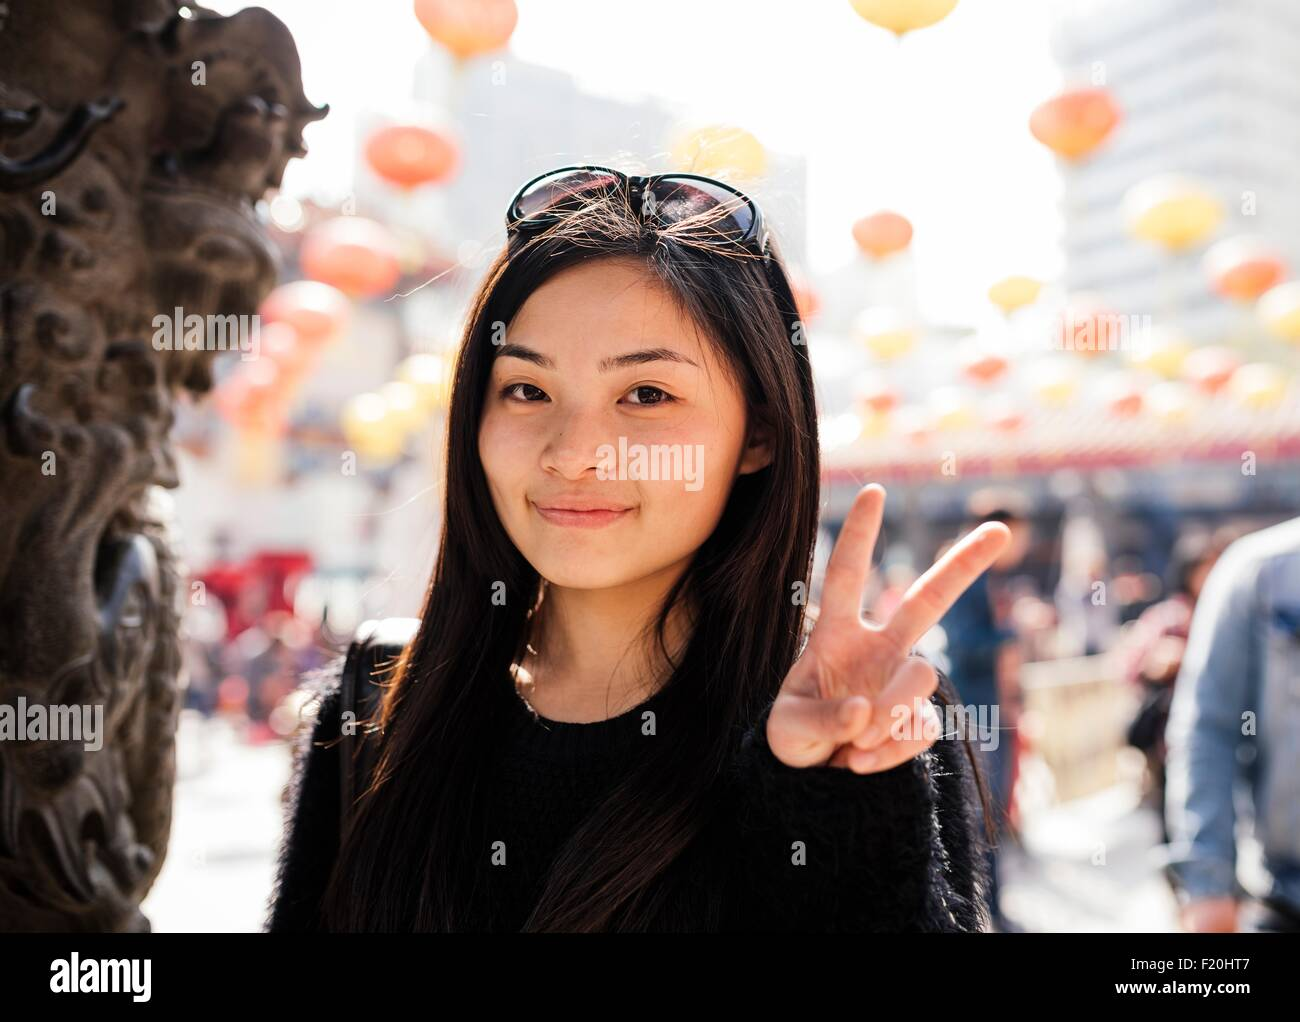 Portrait of young woman with long hair and sunglasses on head doing peace sign, looking at camera - Stock Image